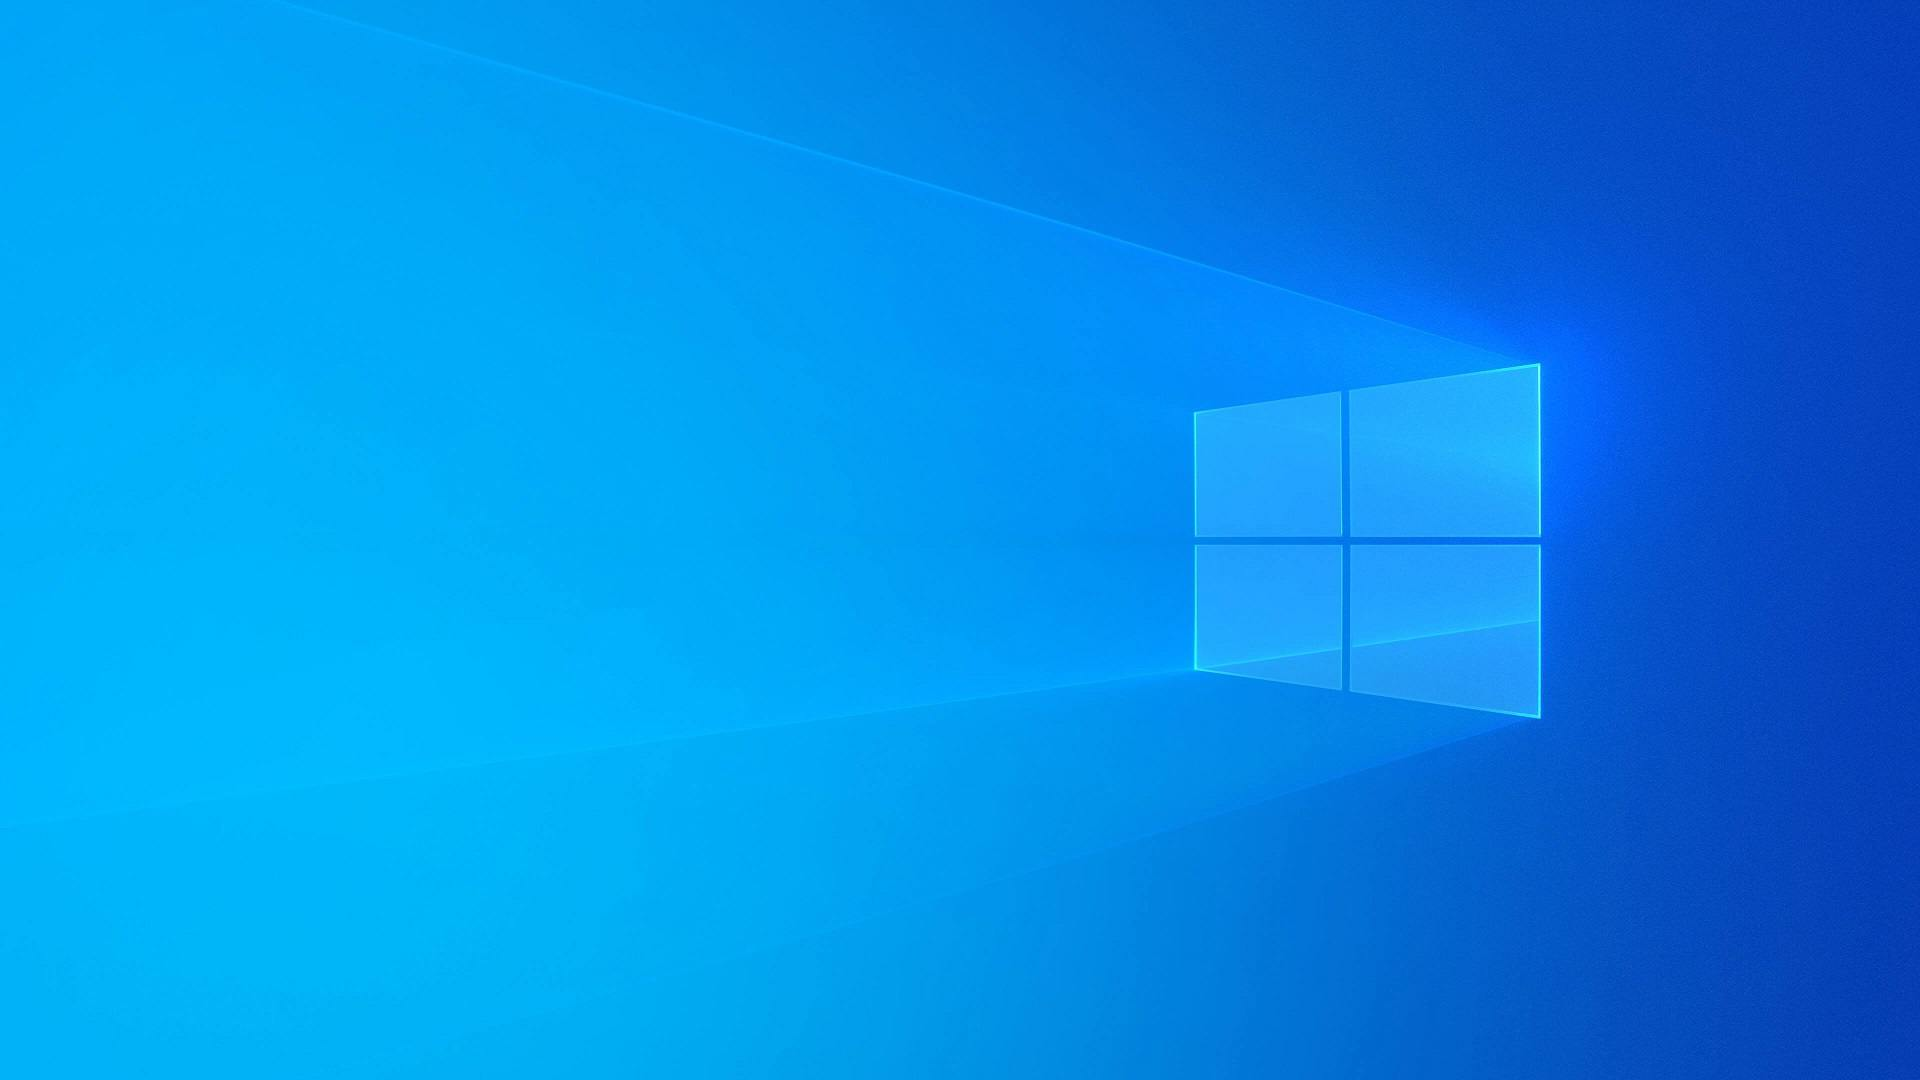 Windows 10 Light Theme Wallpaper Download In 4k Auflösung